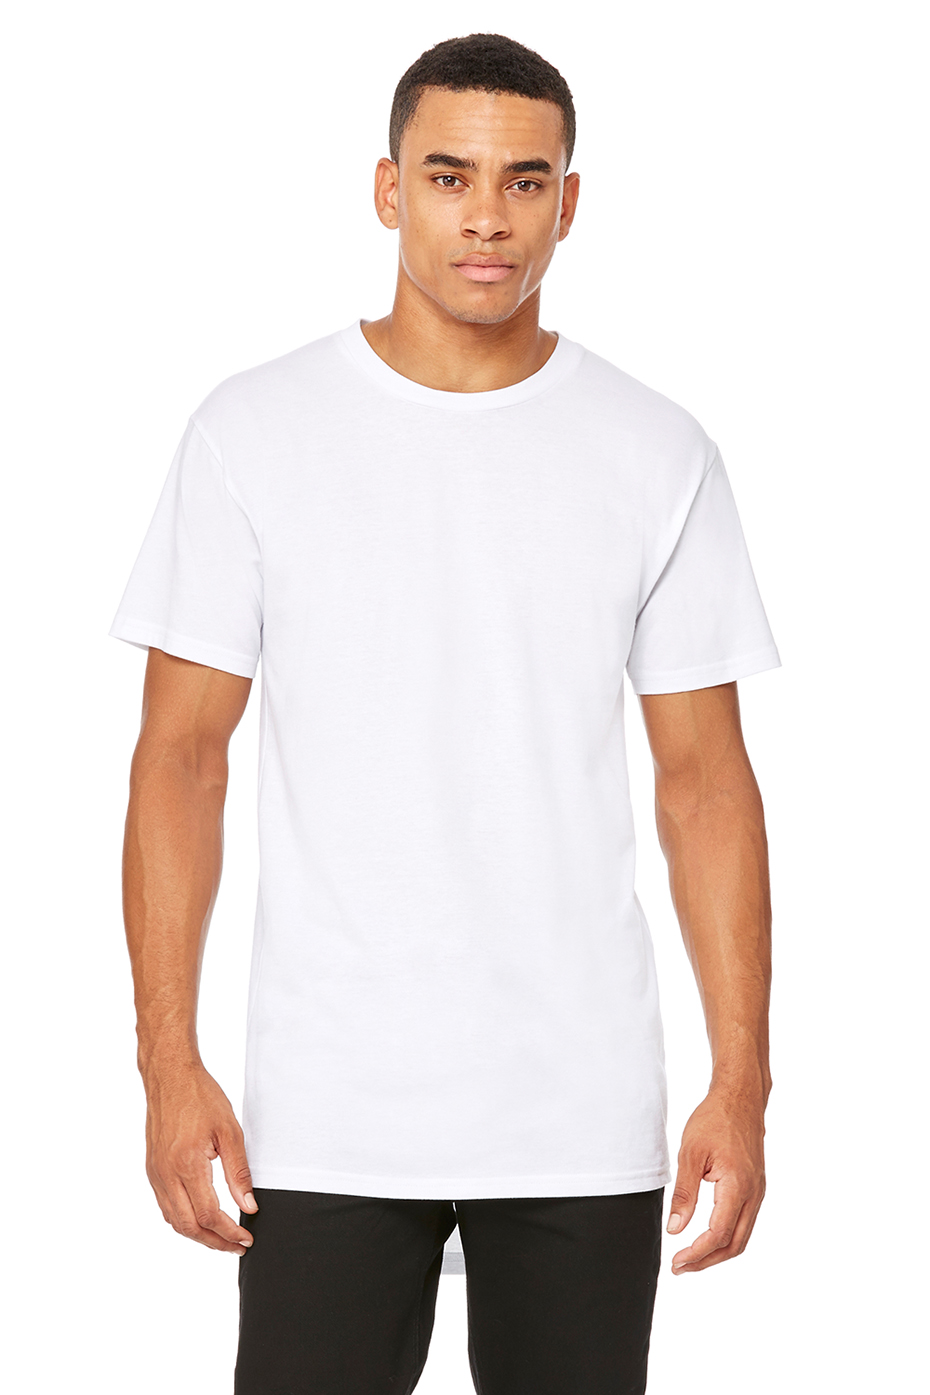 Mens Clothing On Sale Clearance